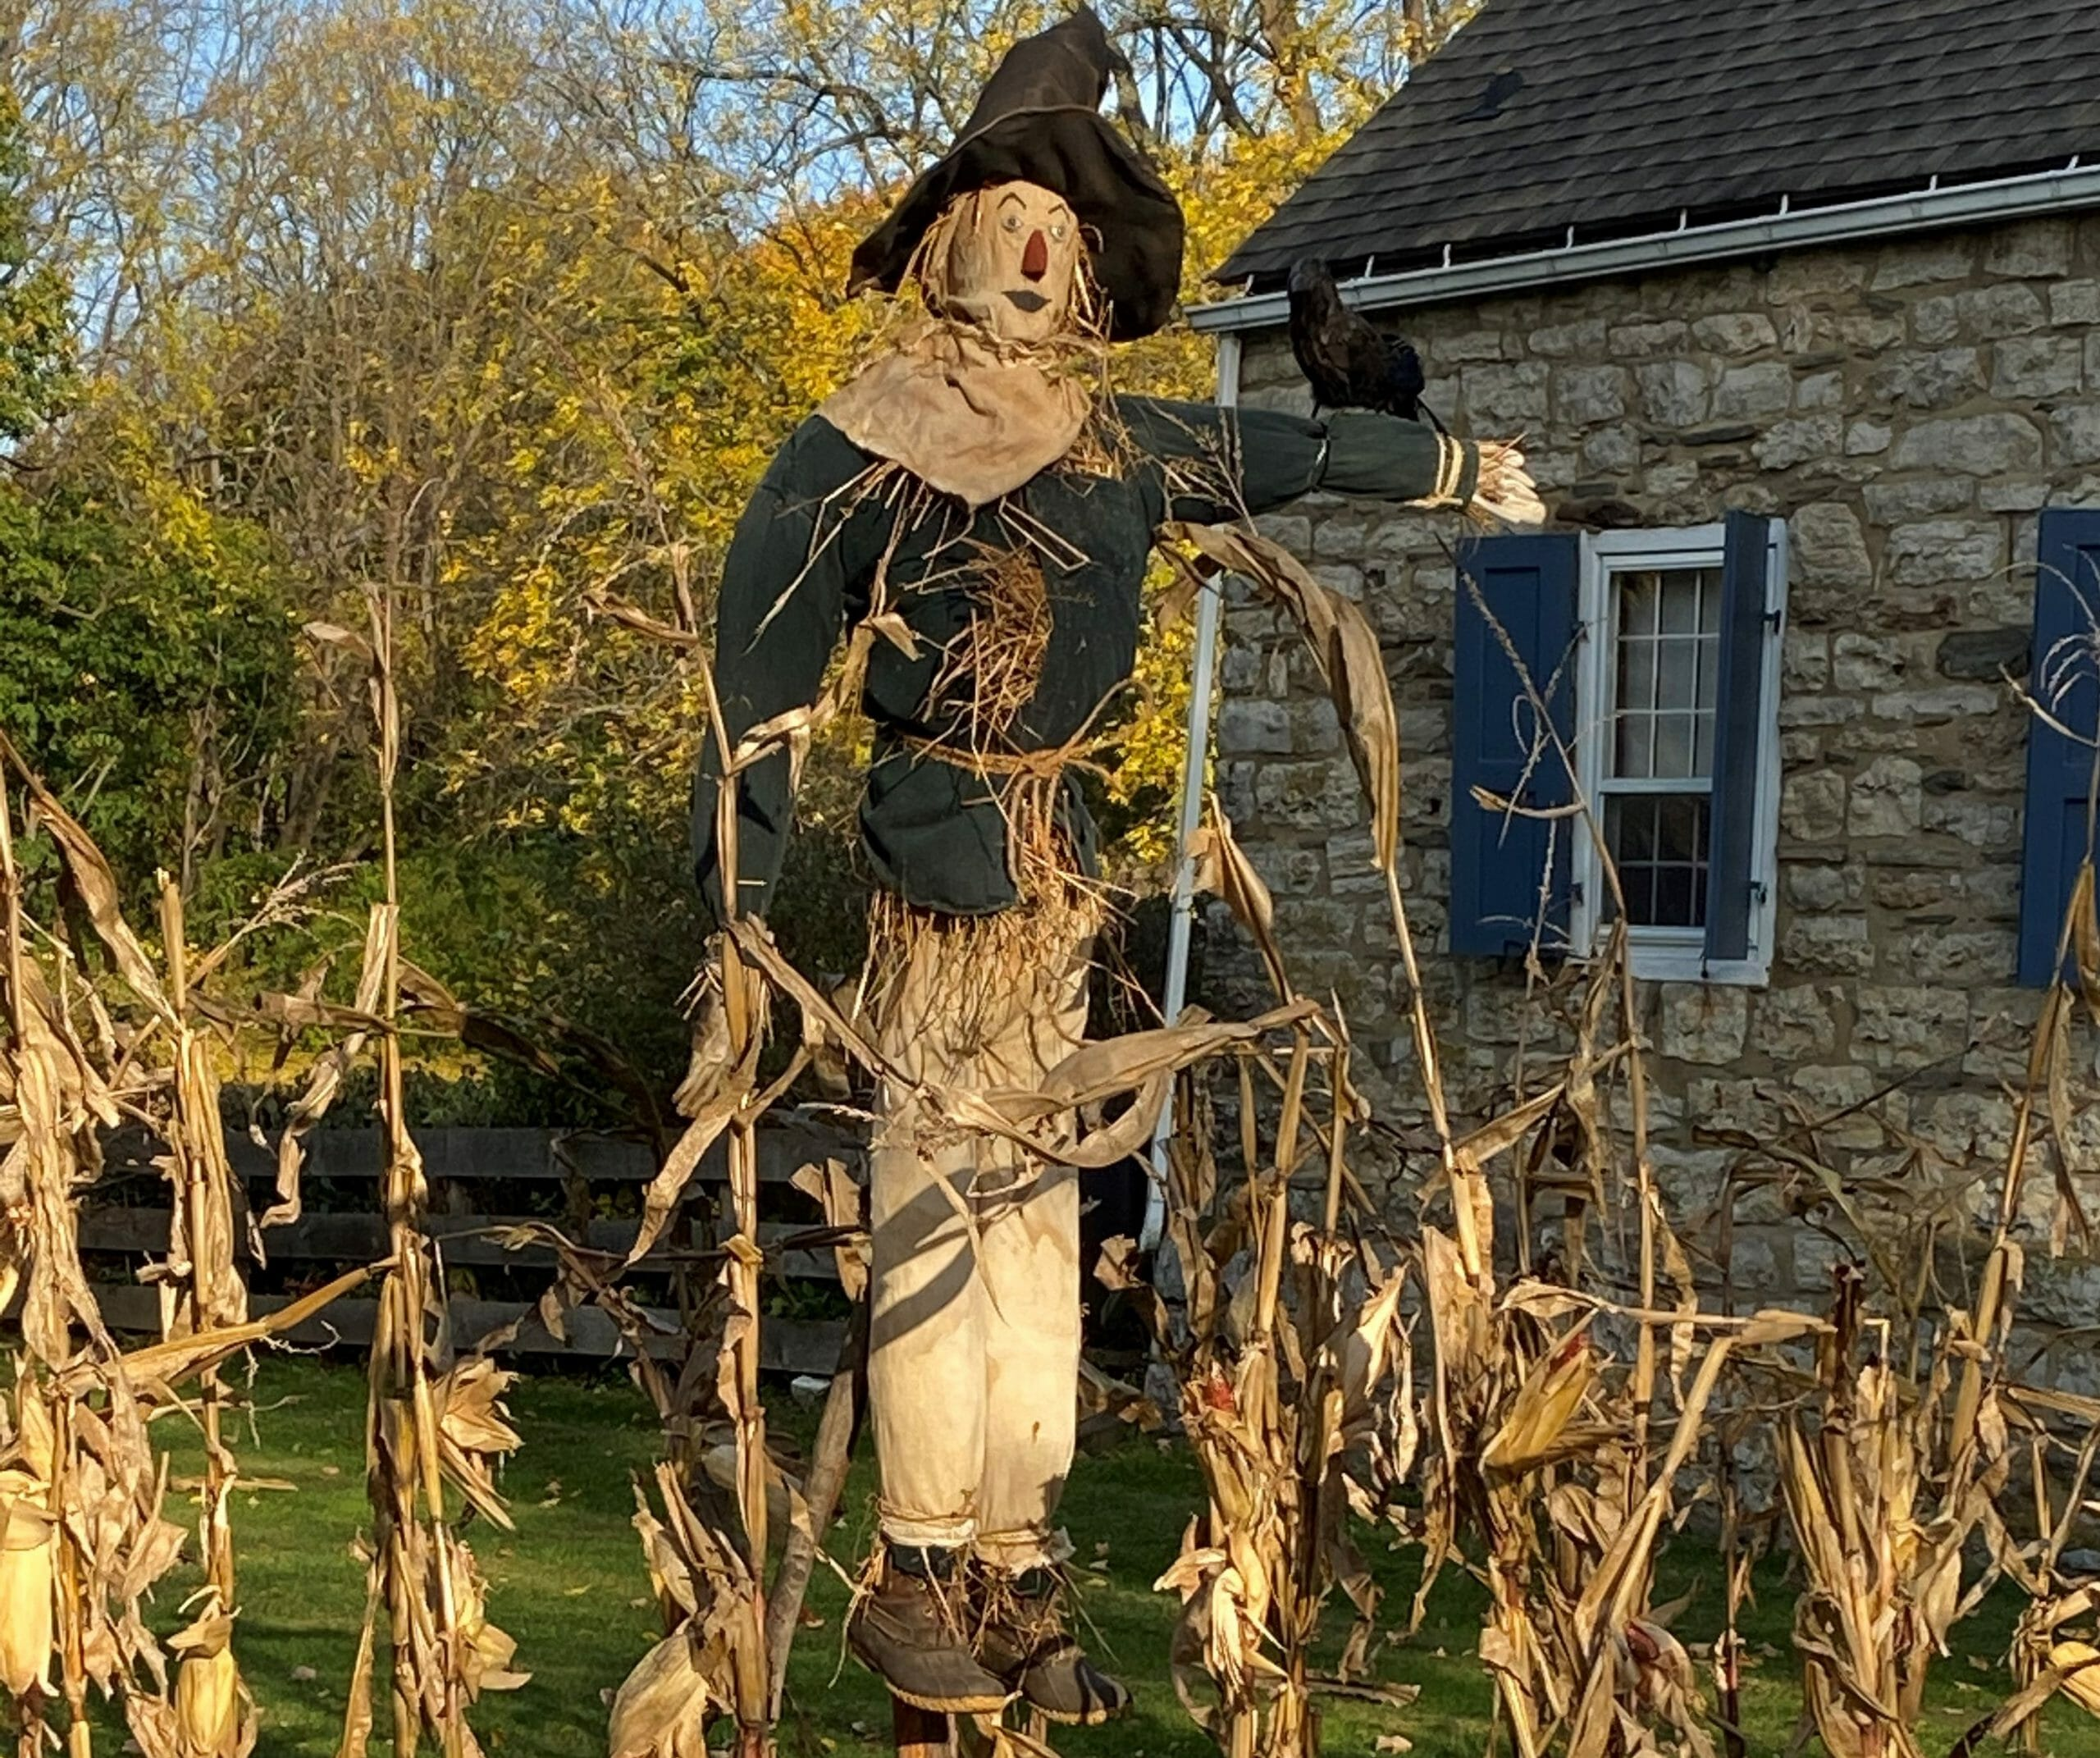 Scarecrow with fake bird in arm